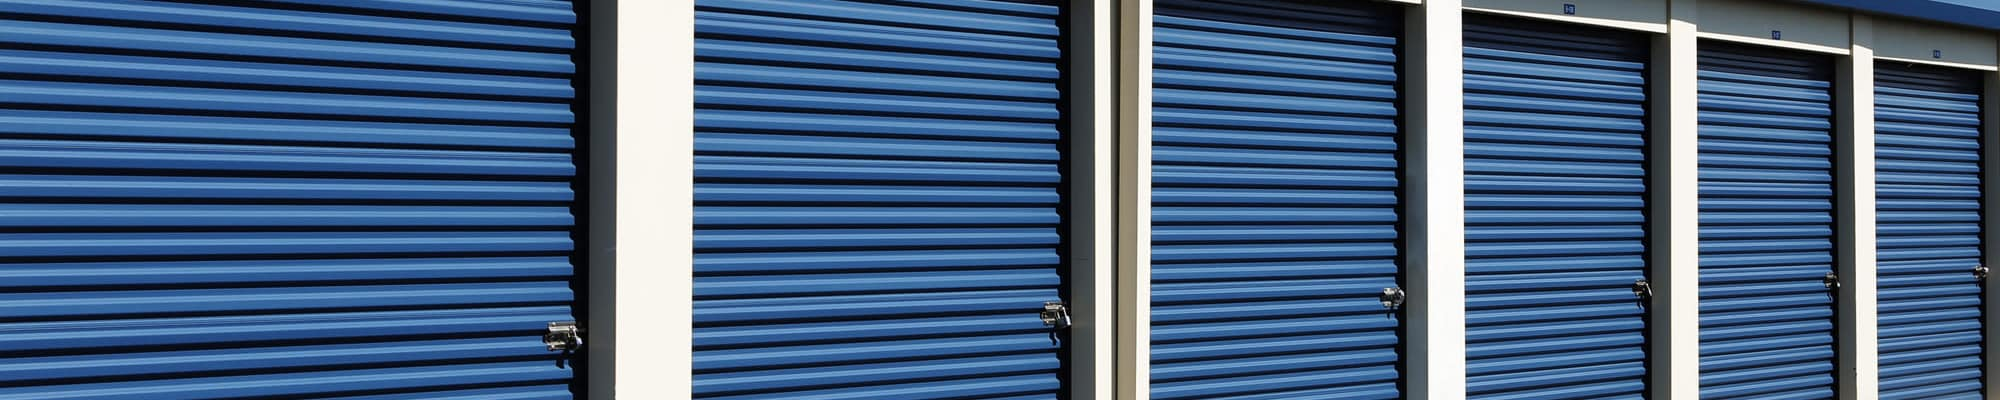 Self storage solutions in Greenwood, South Carolina